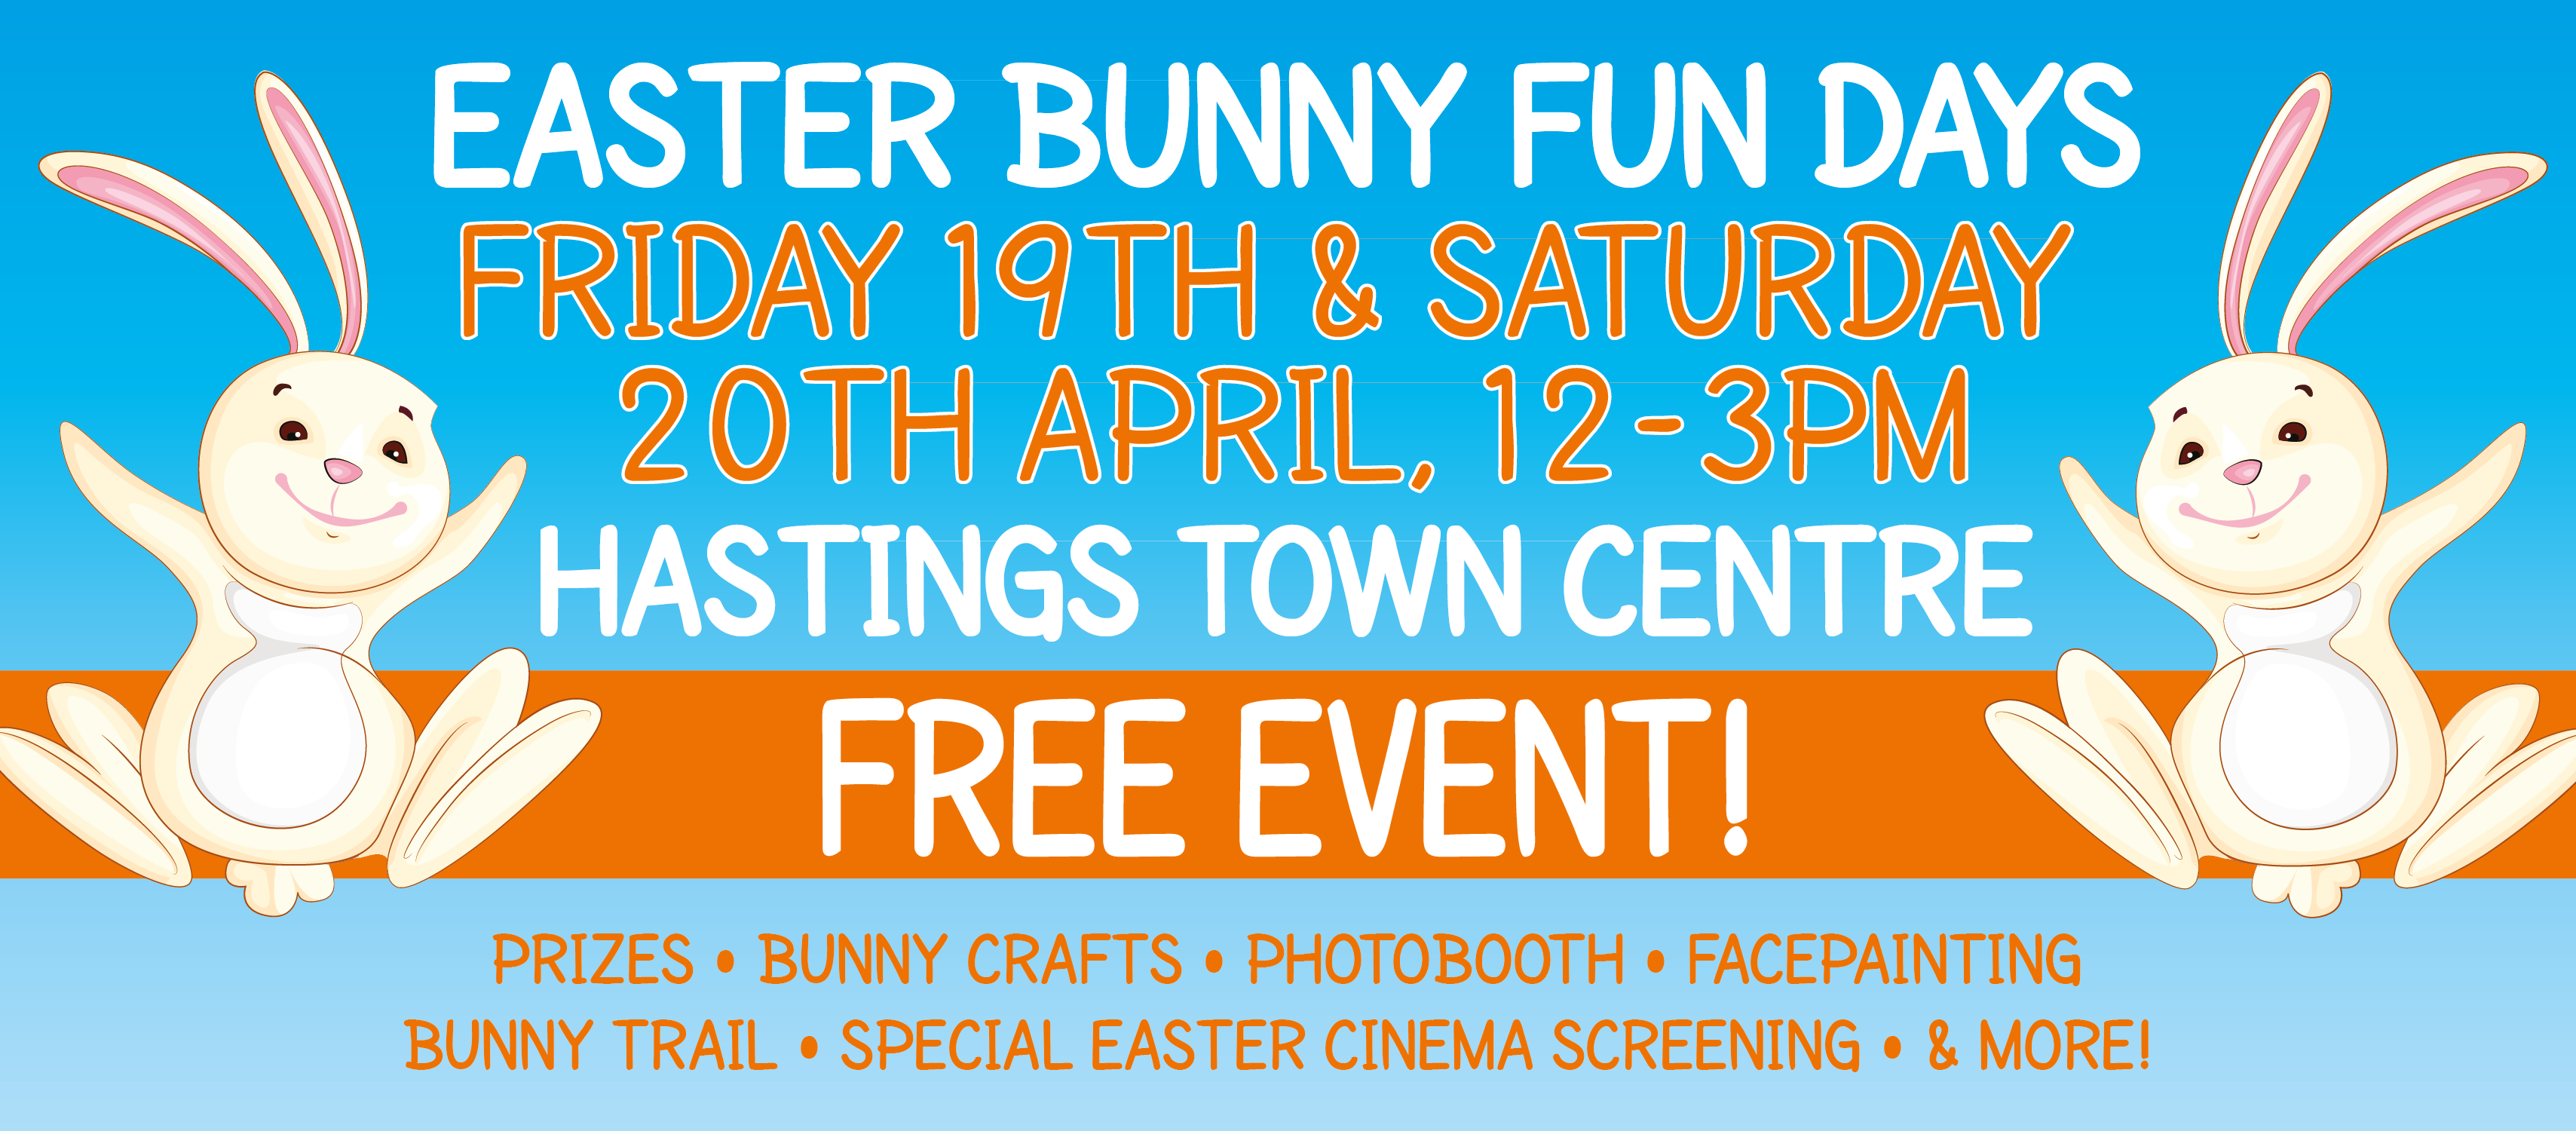 Hastings Easter Bunny Fun Days